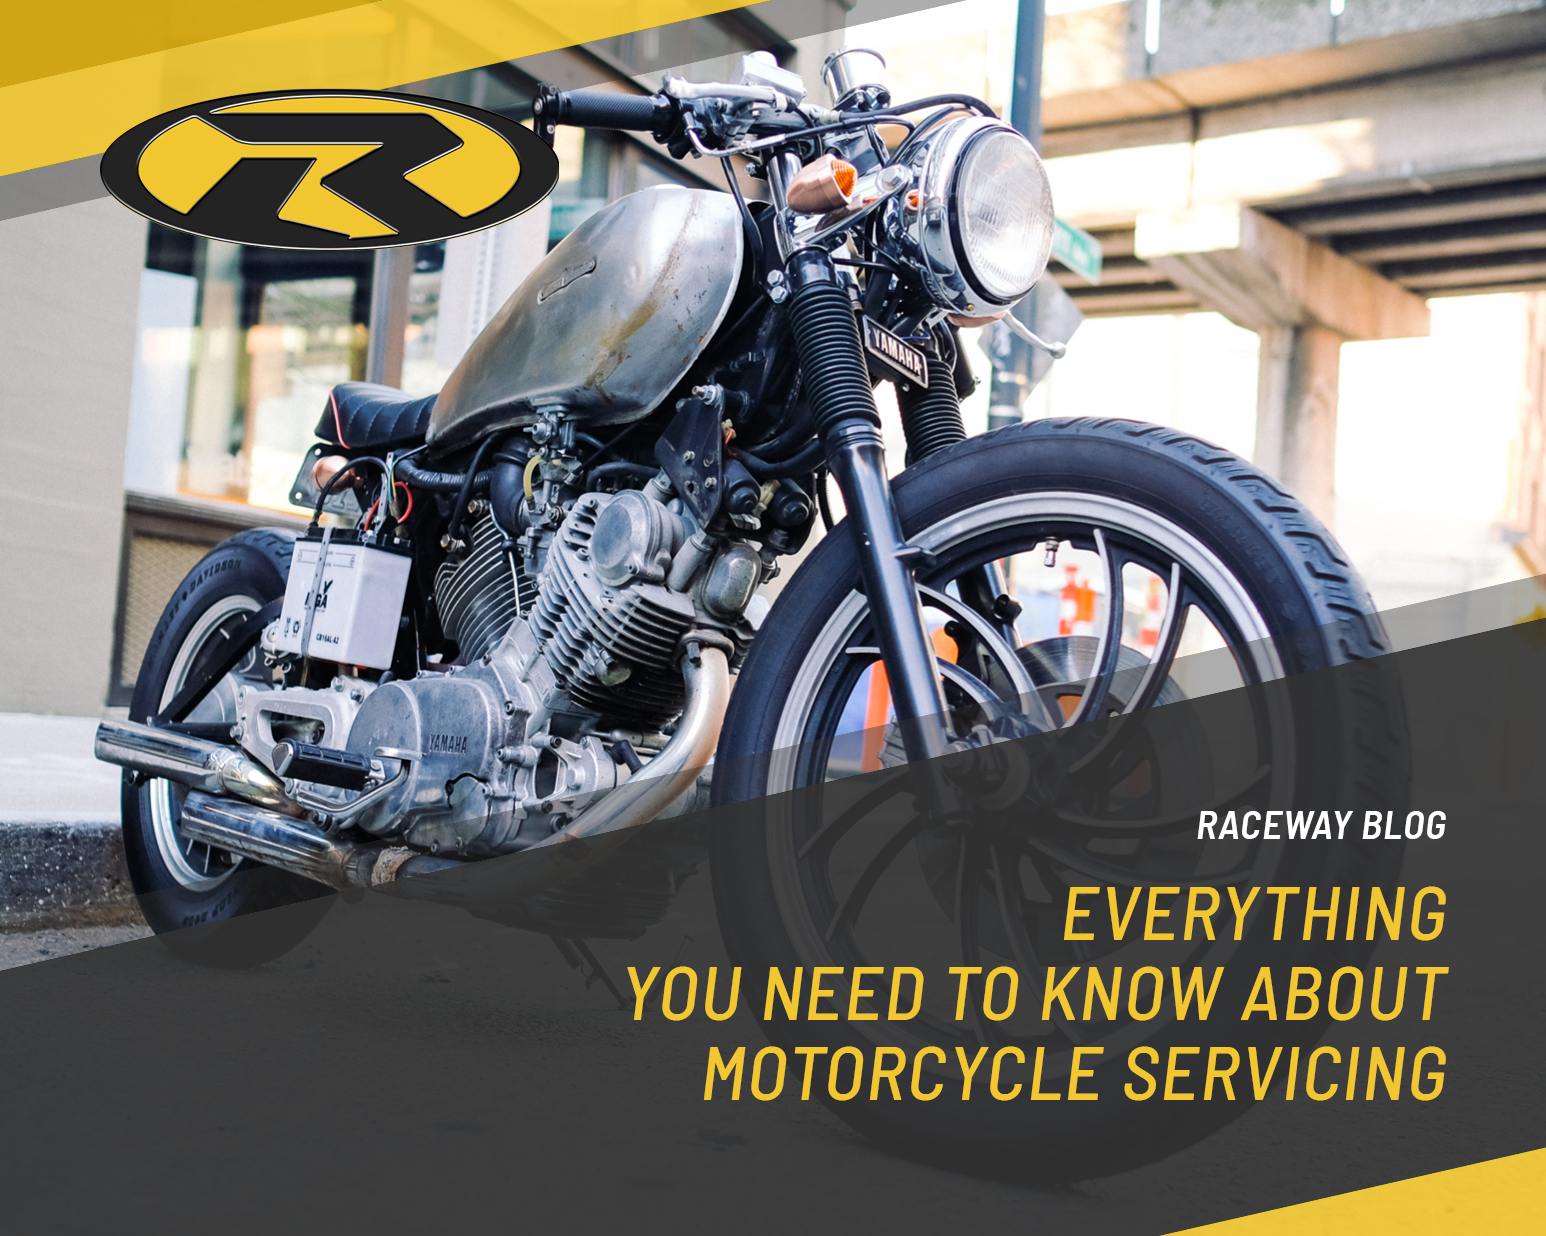 Everything You Need to Know about Motorcycle Servicing